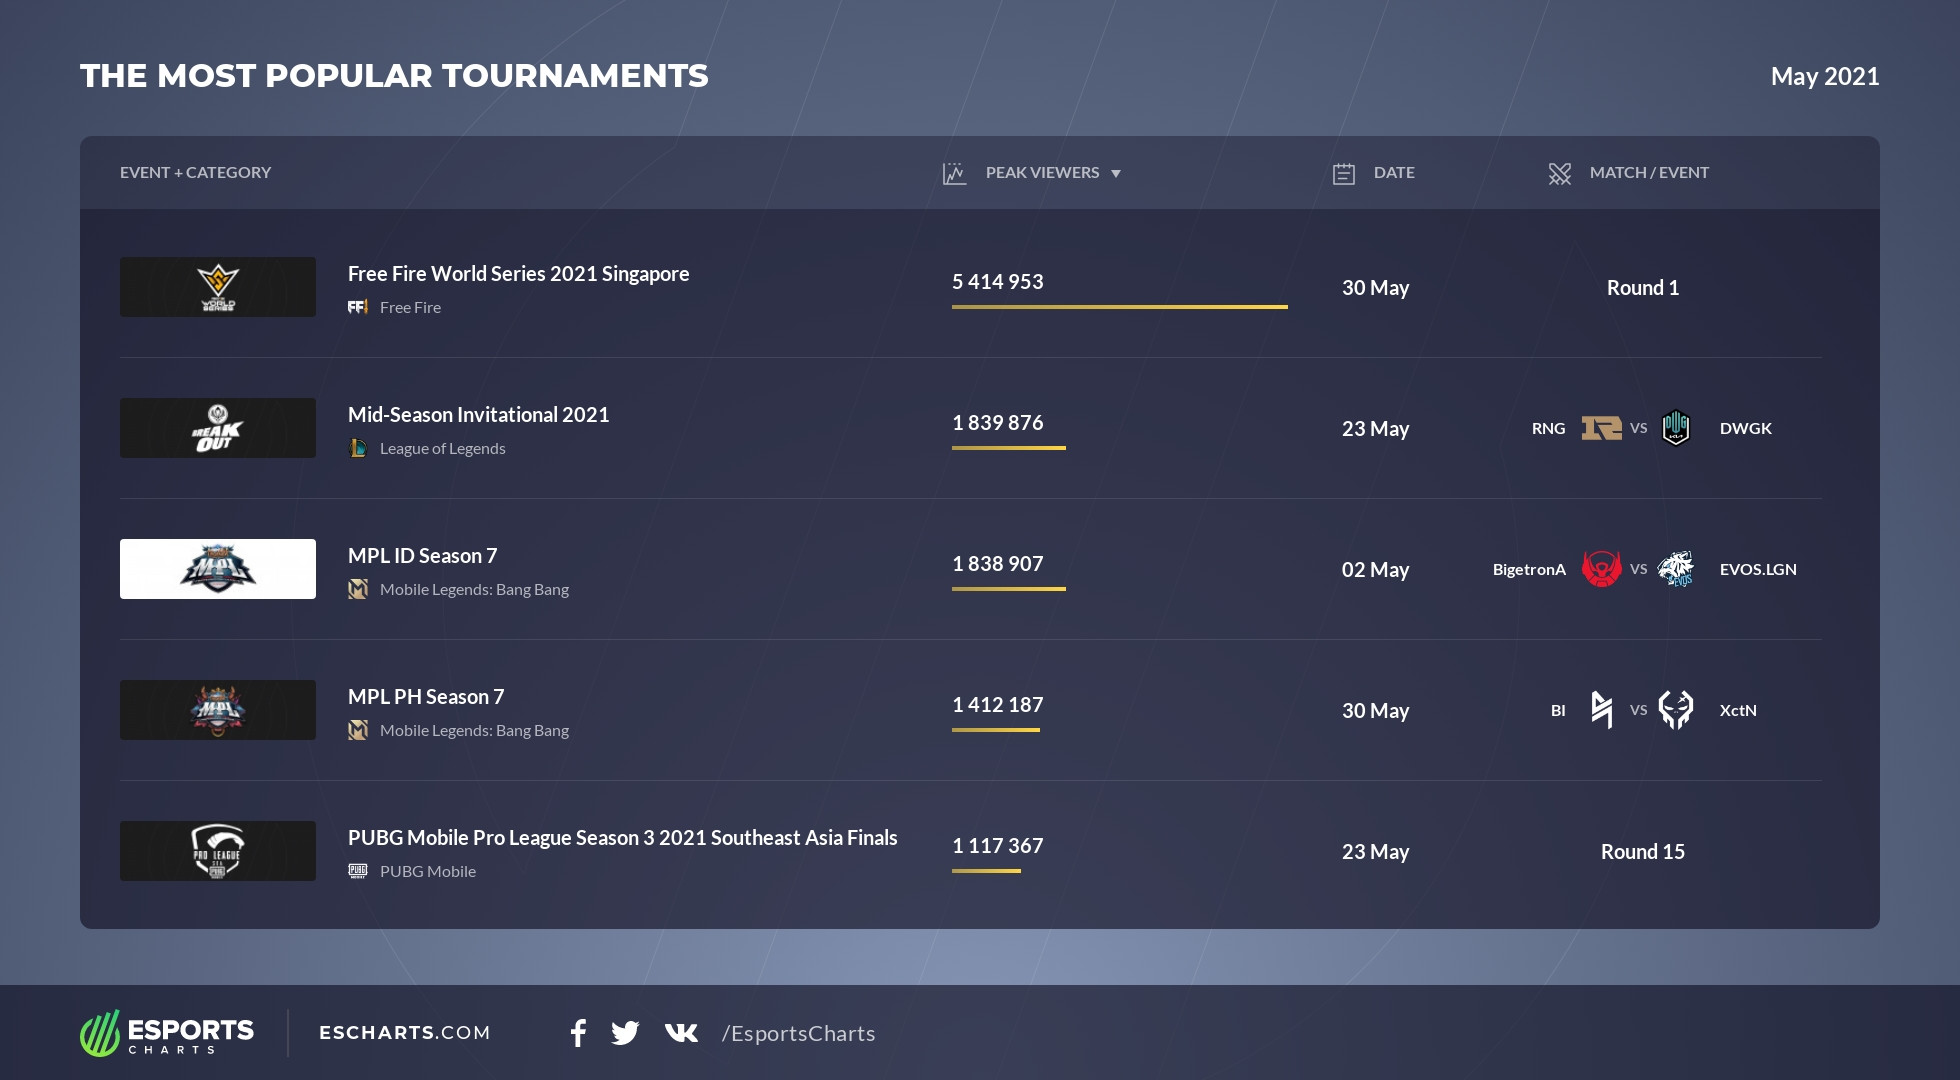 top tournaments may 2021